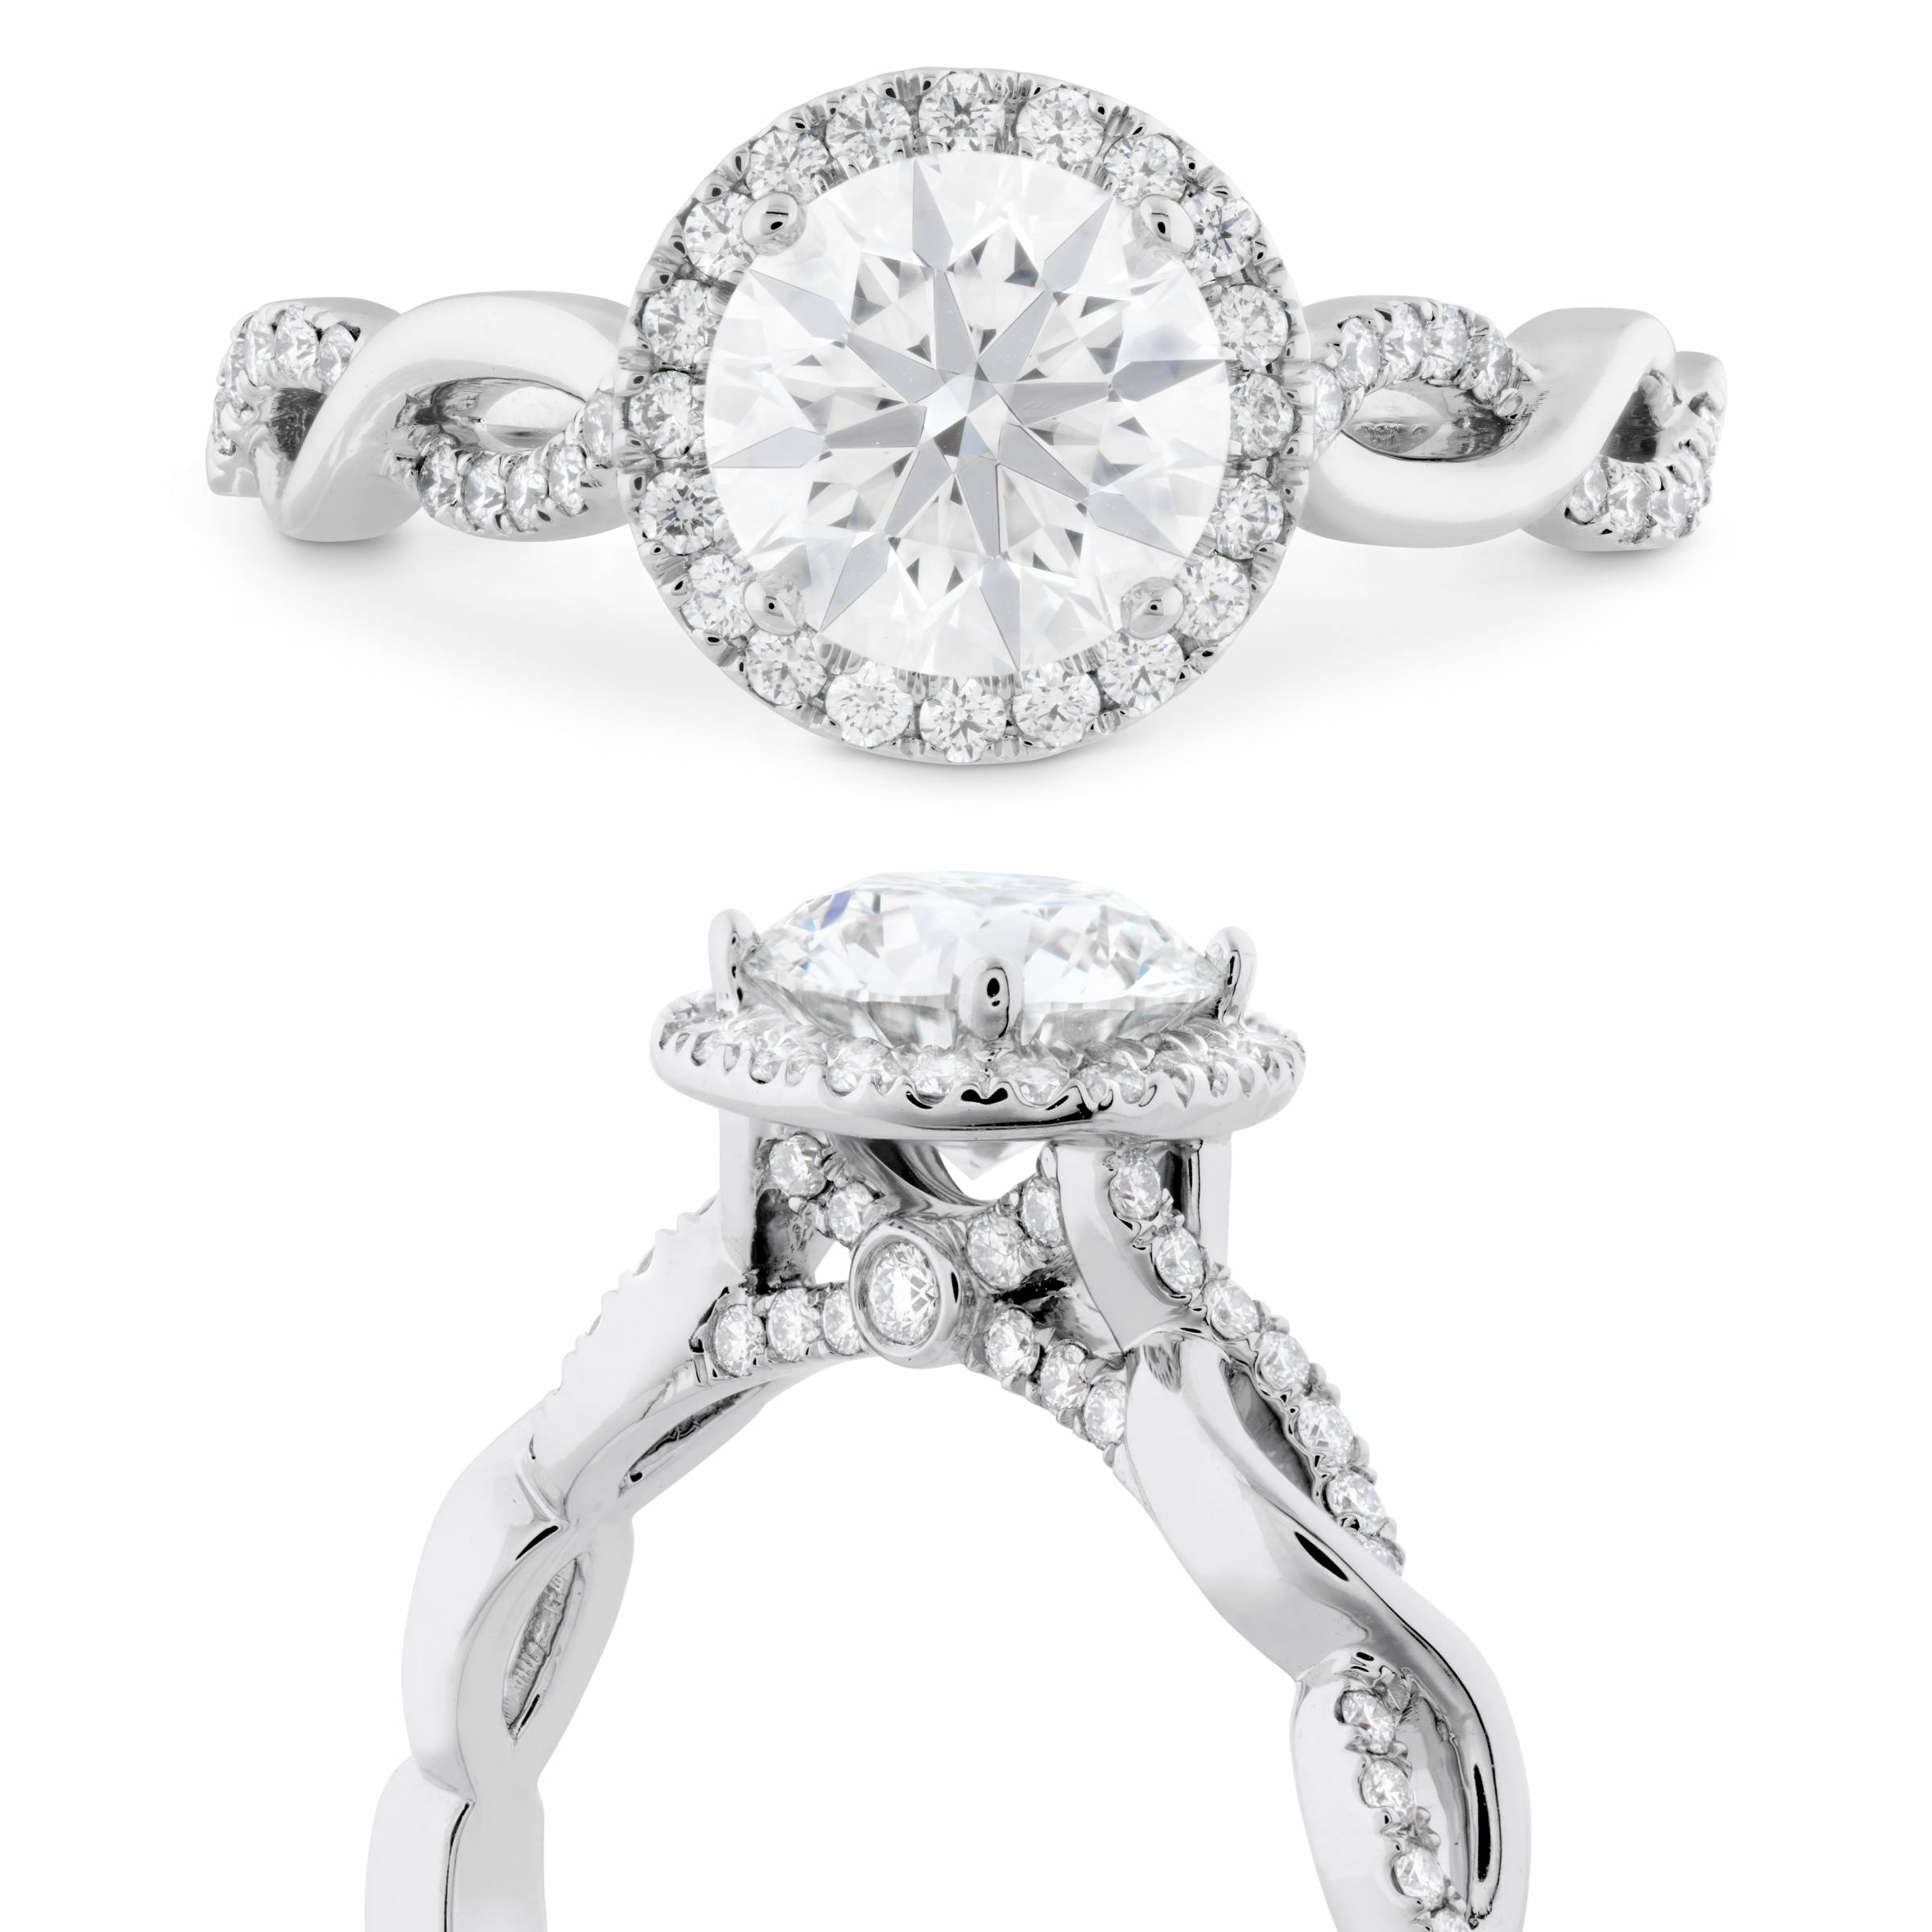 Walters & Hogsett Jewelers diamond engagement ring